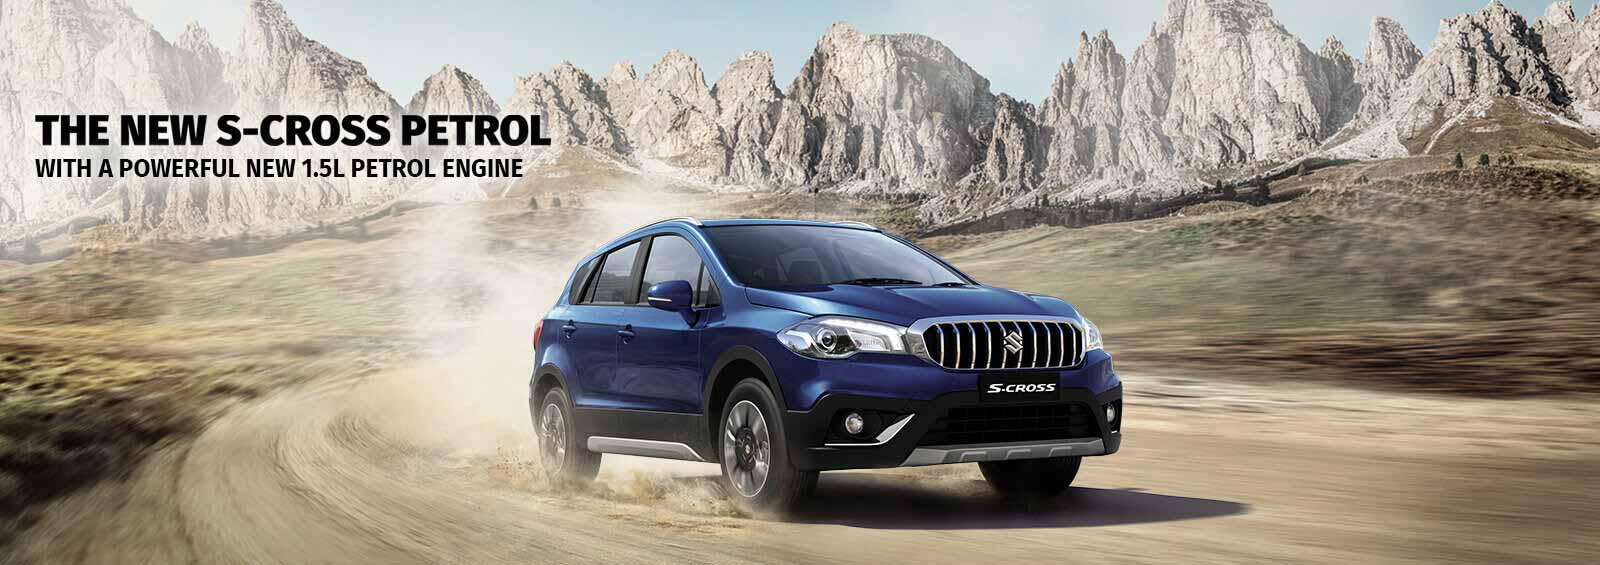 S-Cross Vehicleads Mamoon Chowk, Pathankot